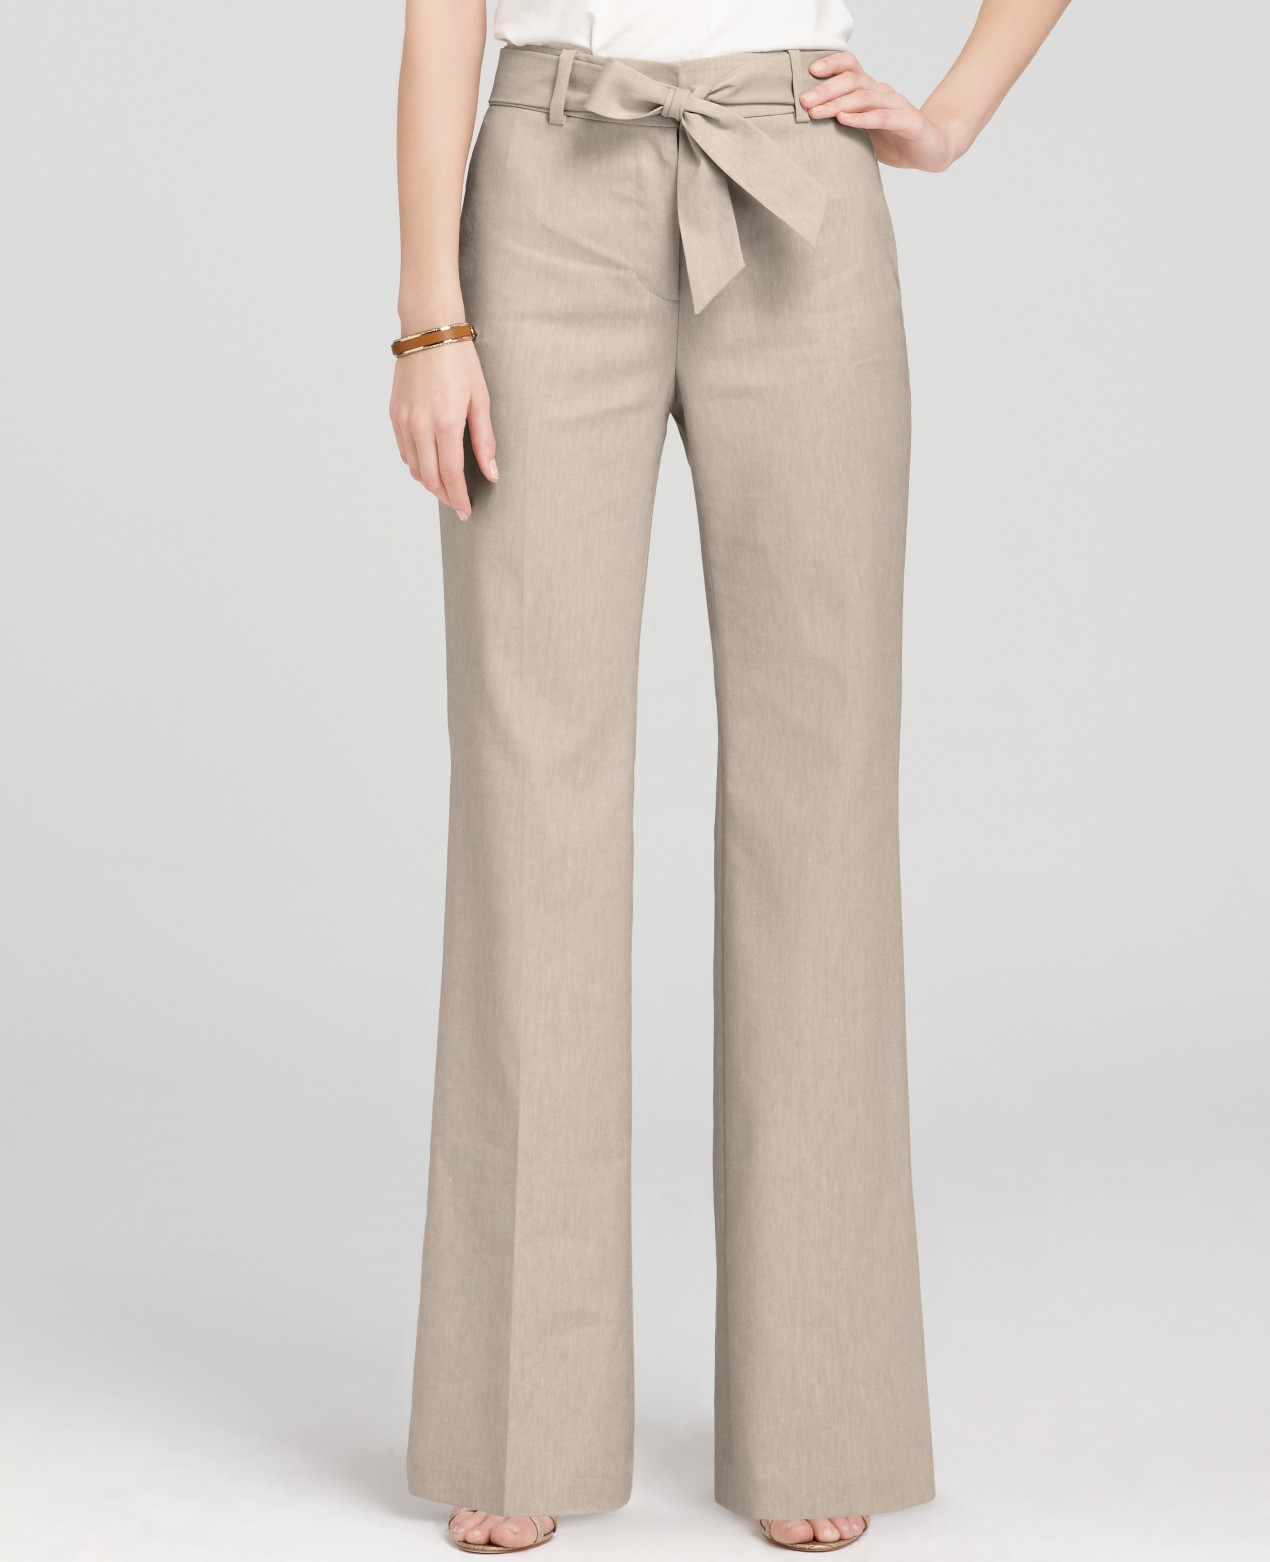 Ann taylor Petite Stretch Linen Twill Wide Leg Pants with Sash in ...